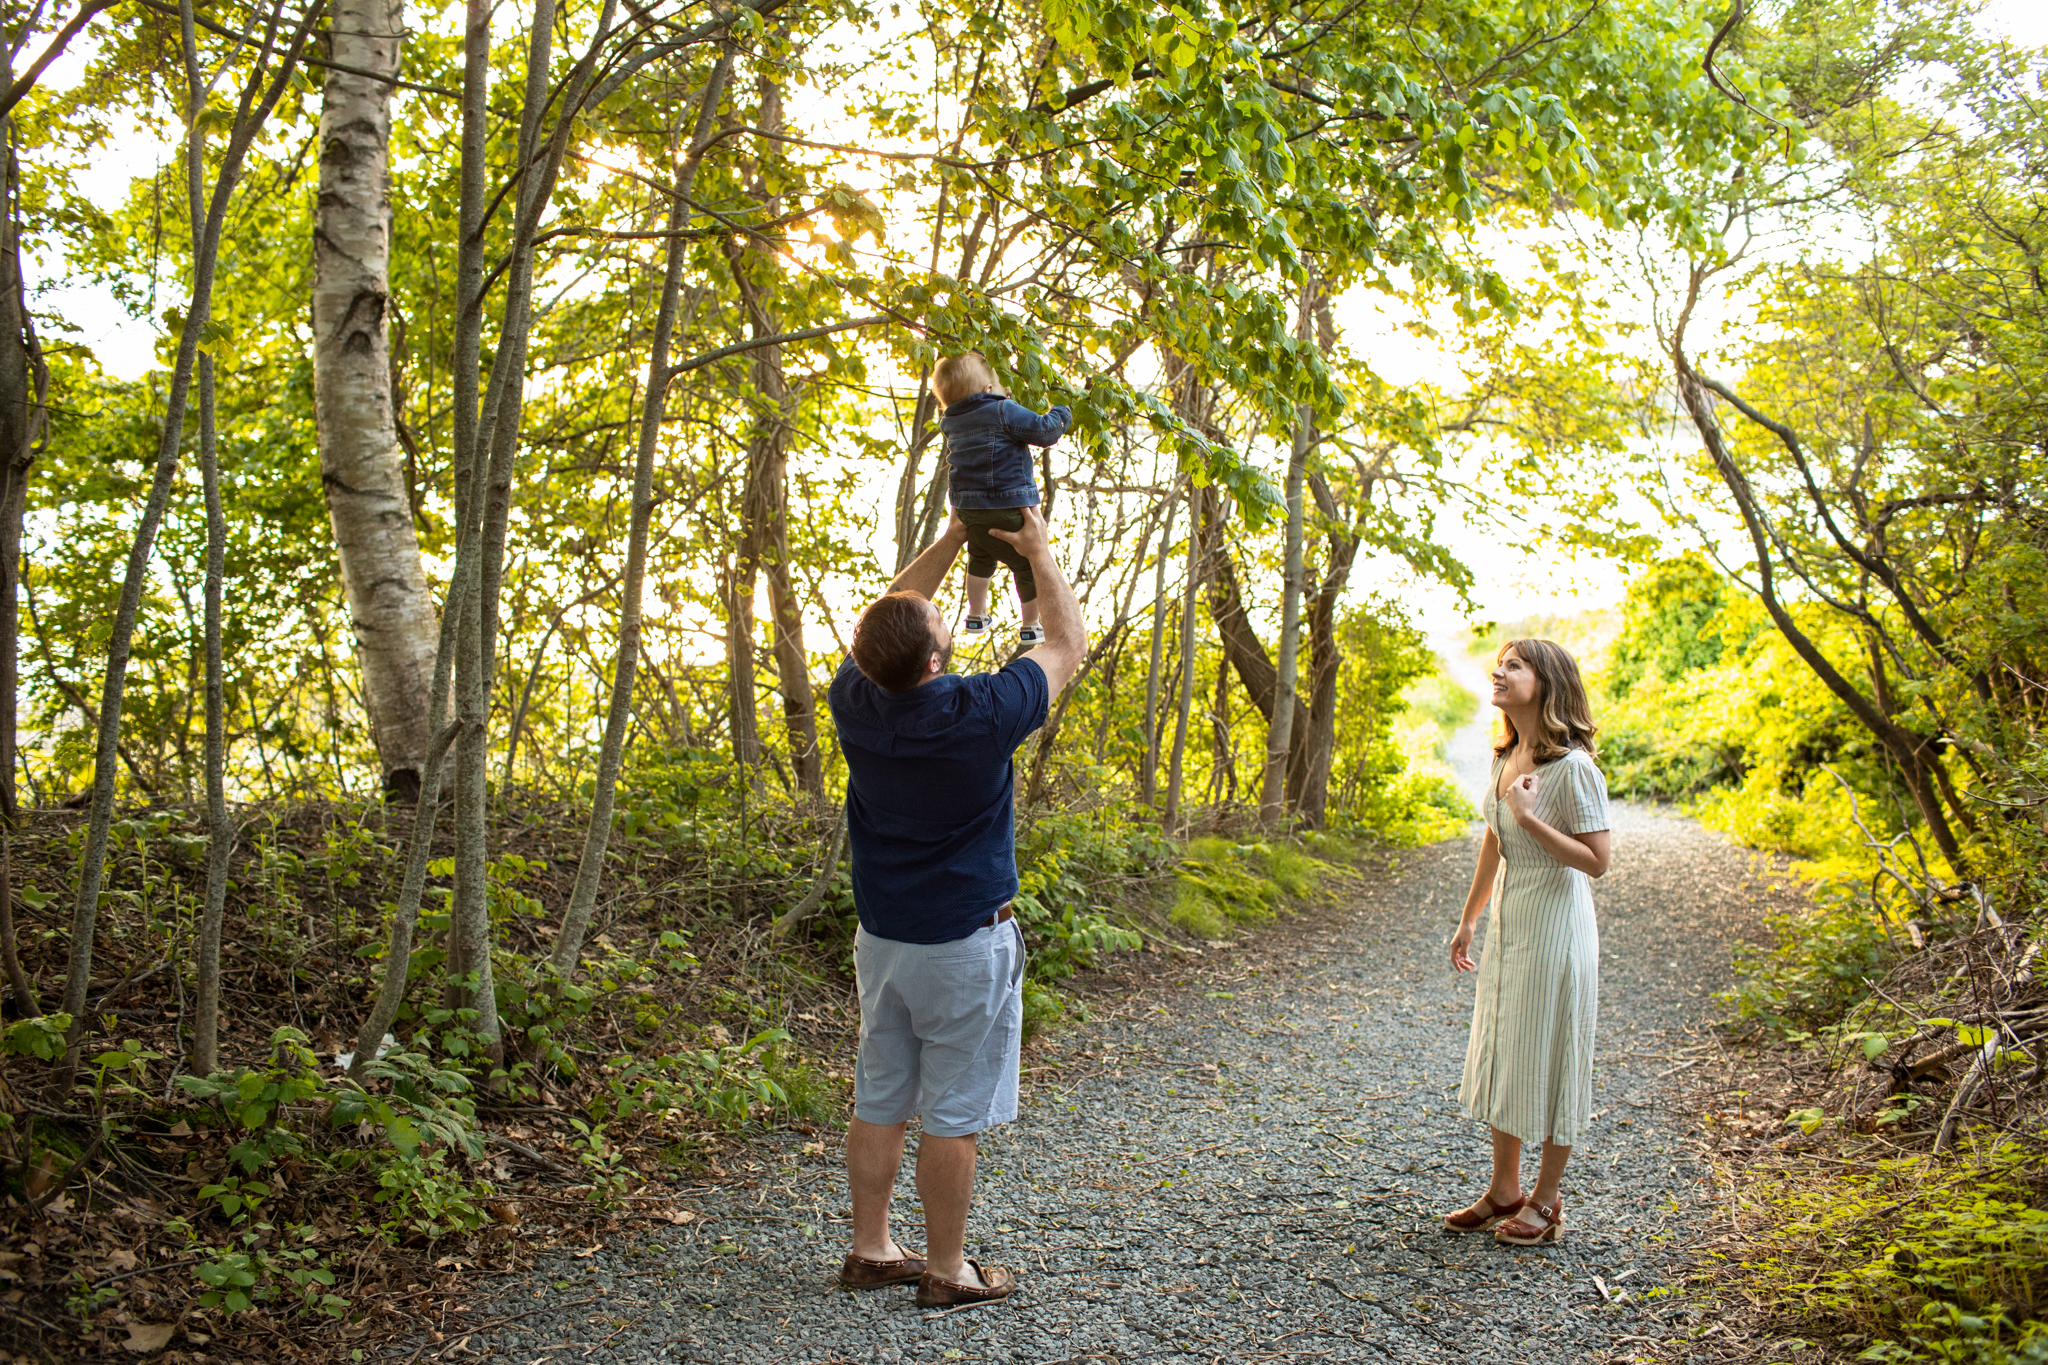 maine-family-photographer-beach-summer-115.jpg